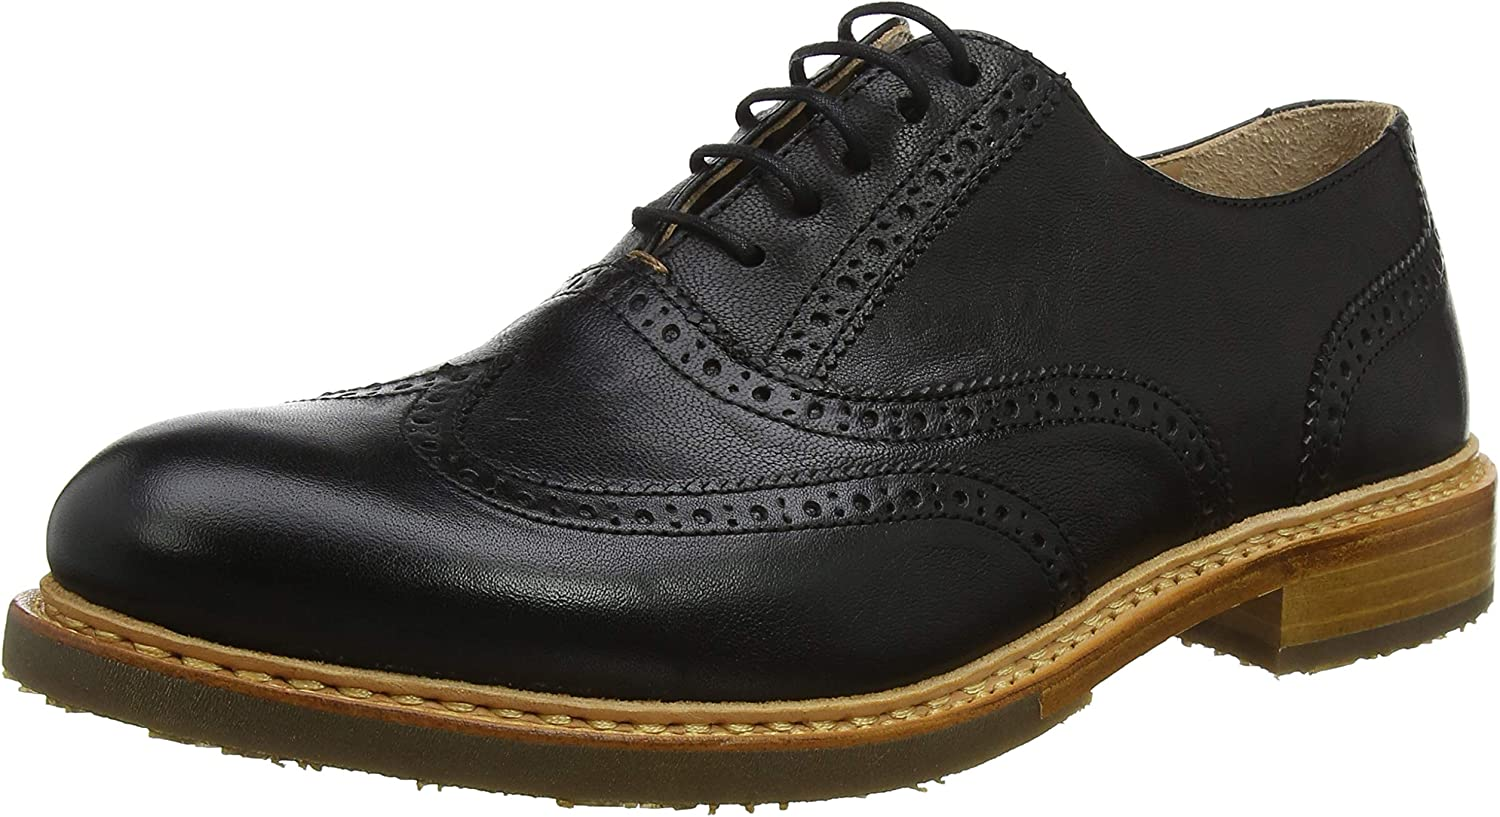 Neosens Max 73% OFF New Free Shipping Men's Oxford Lace-Up